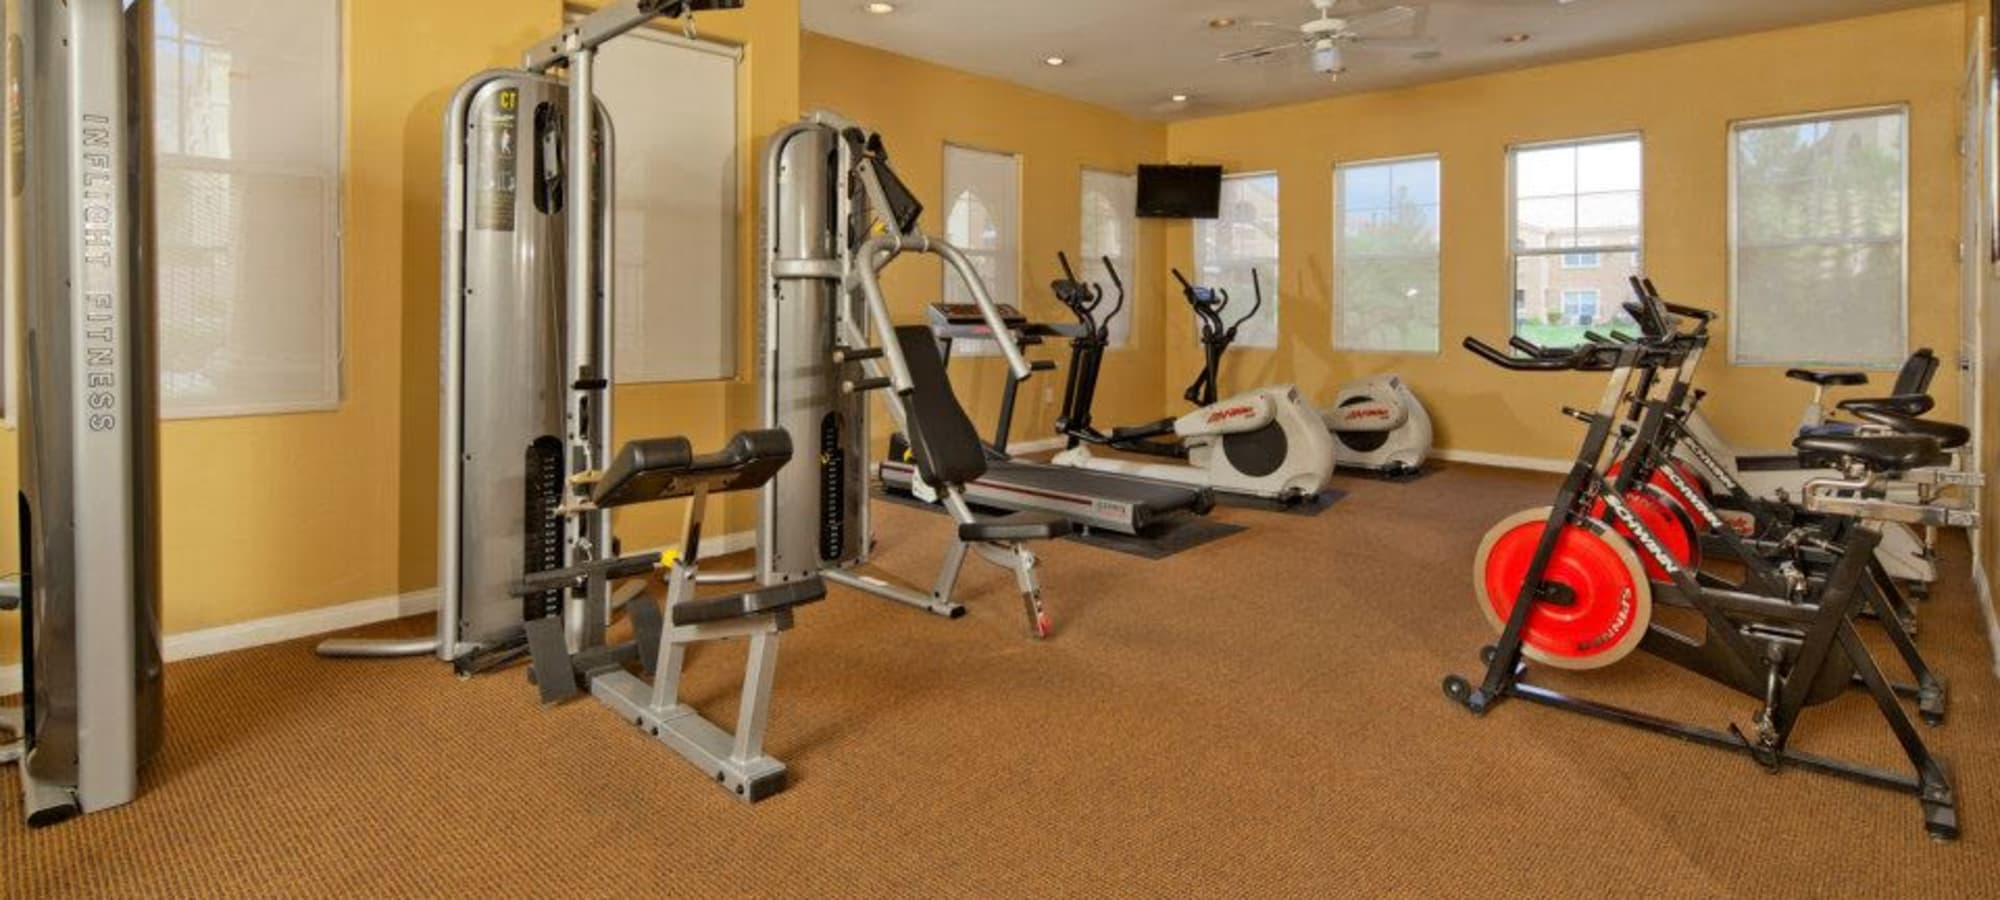 Resident fitness center at Shadow Hills at Lone Mountain in Las Vegas, Nevada